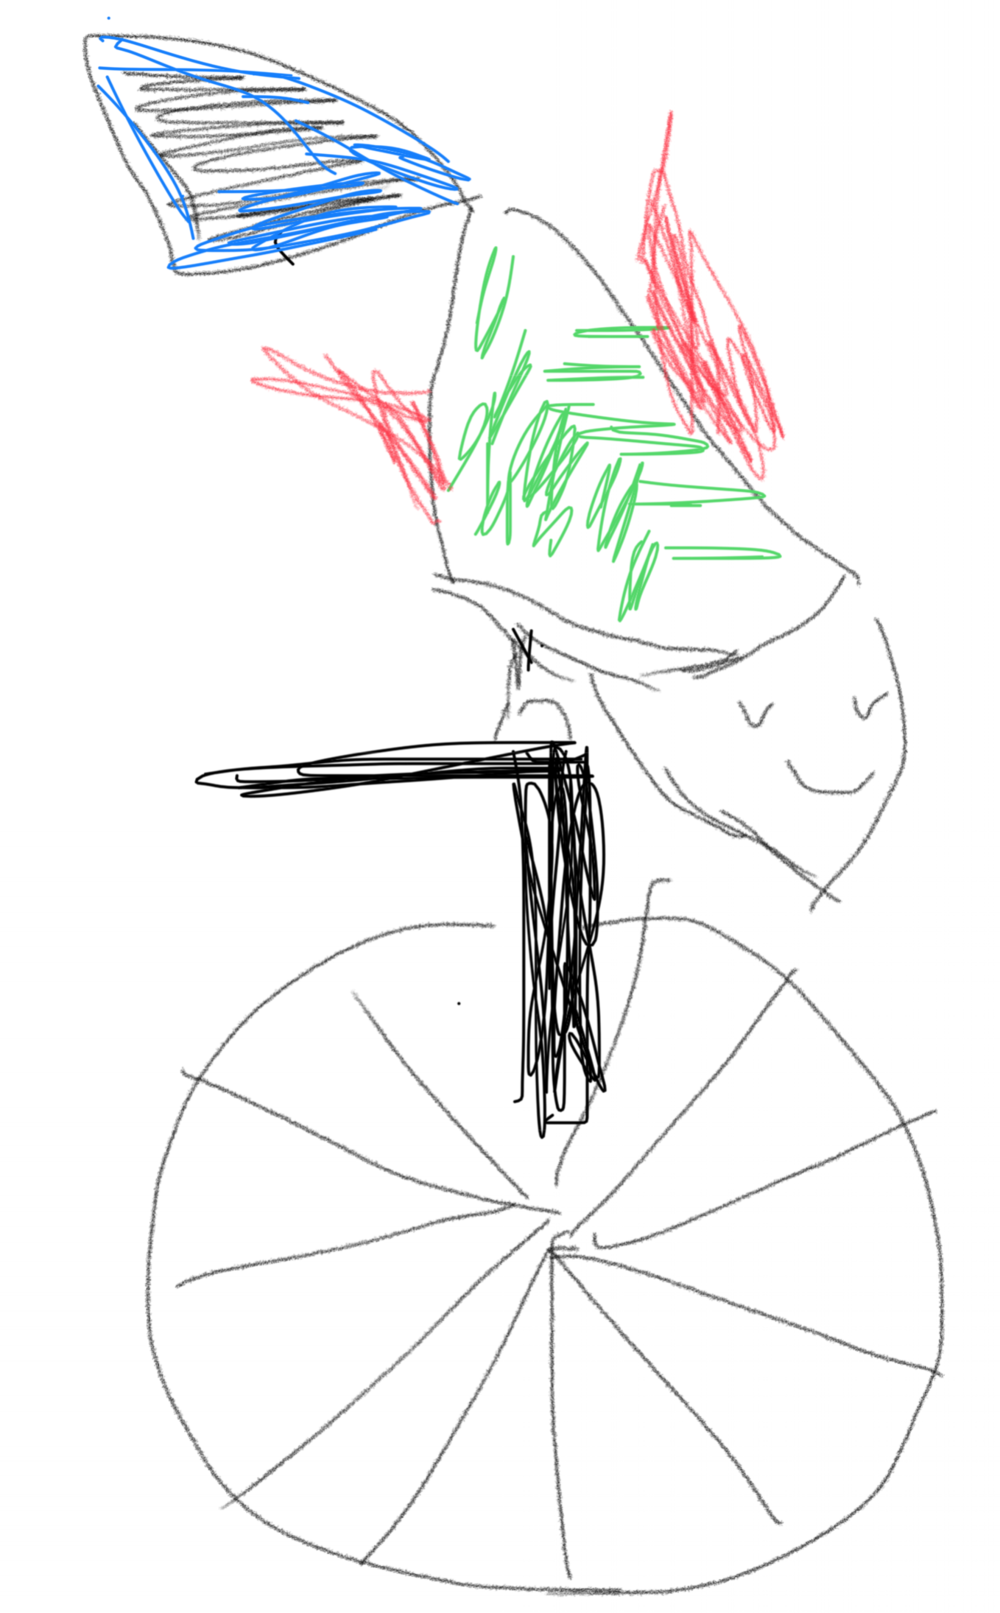 Credit: Nirupa FatFinger drawings on trusty iphone. Fish on a Unicycle